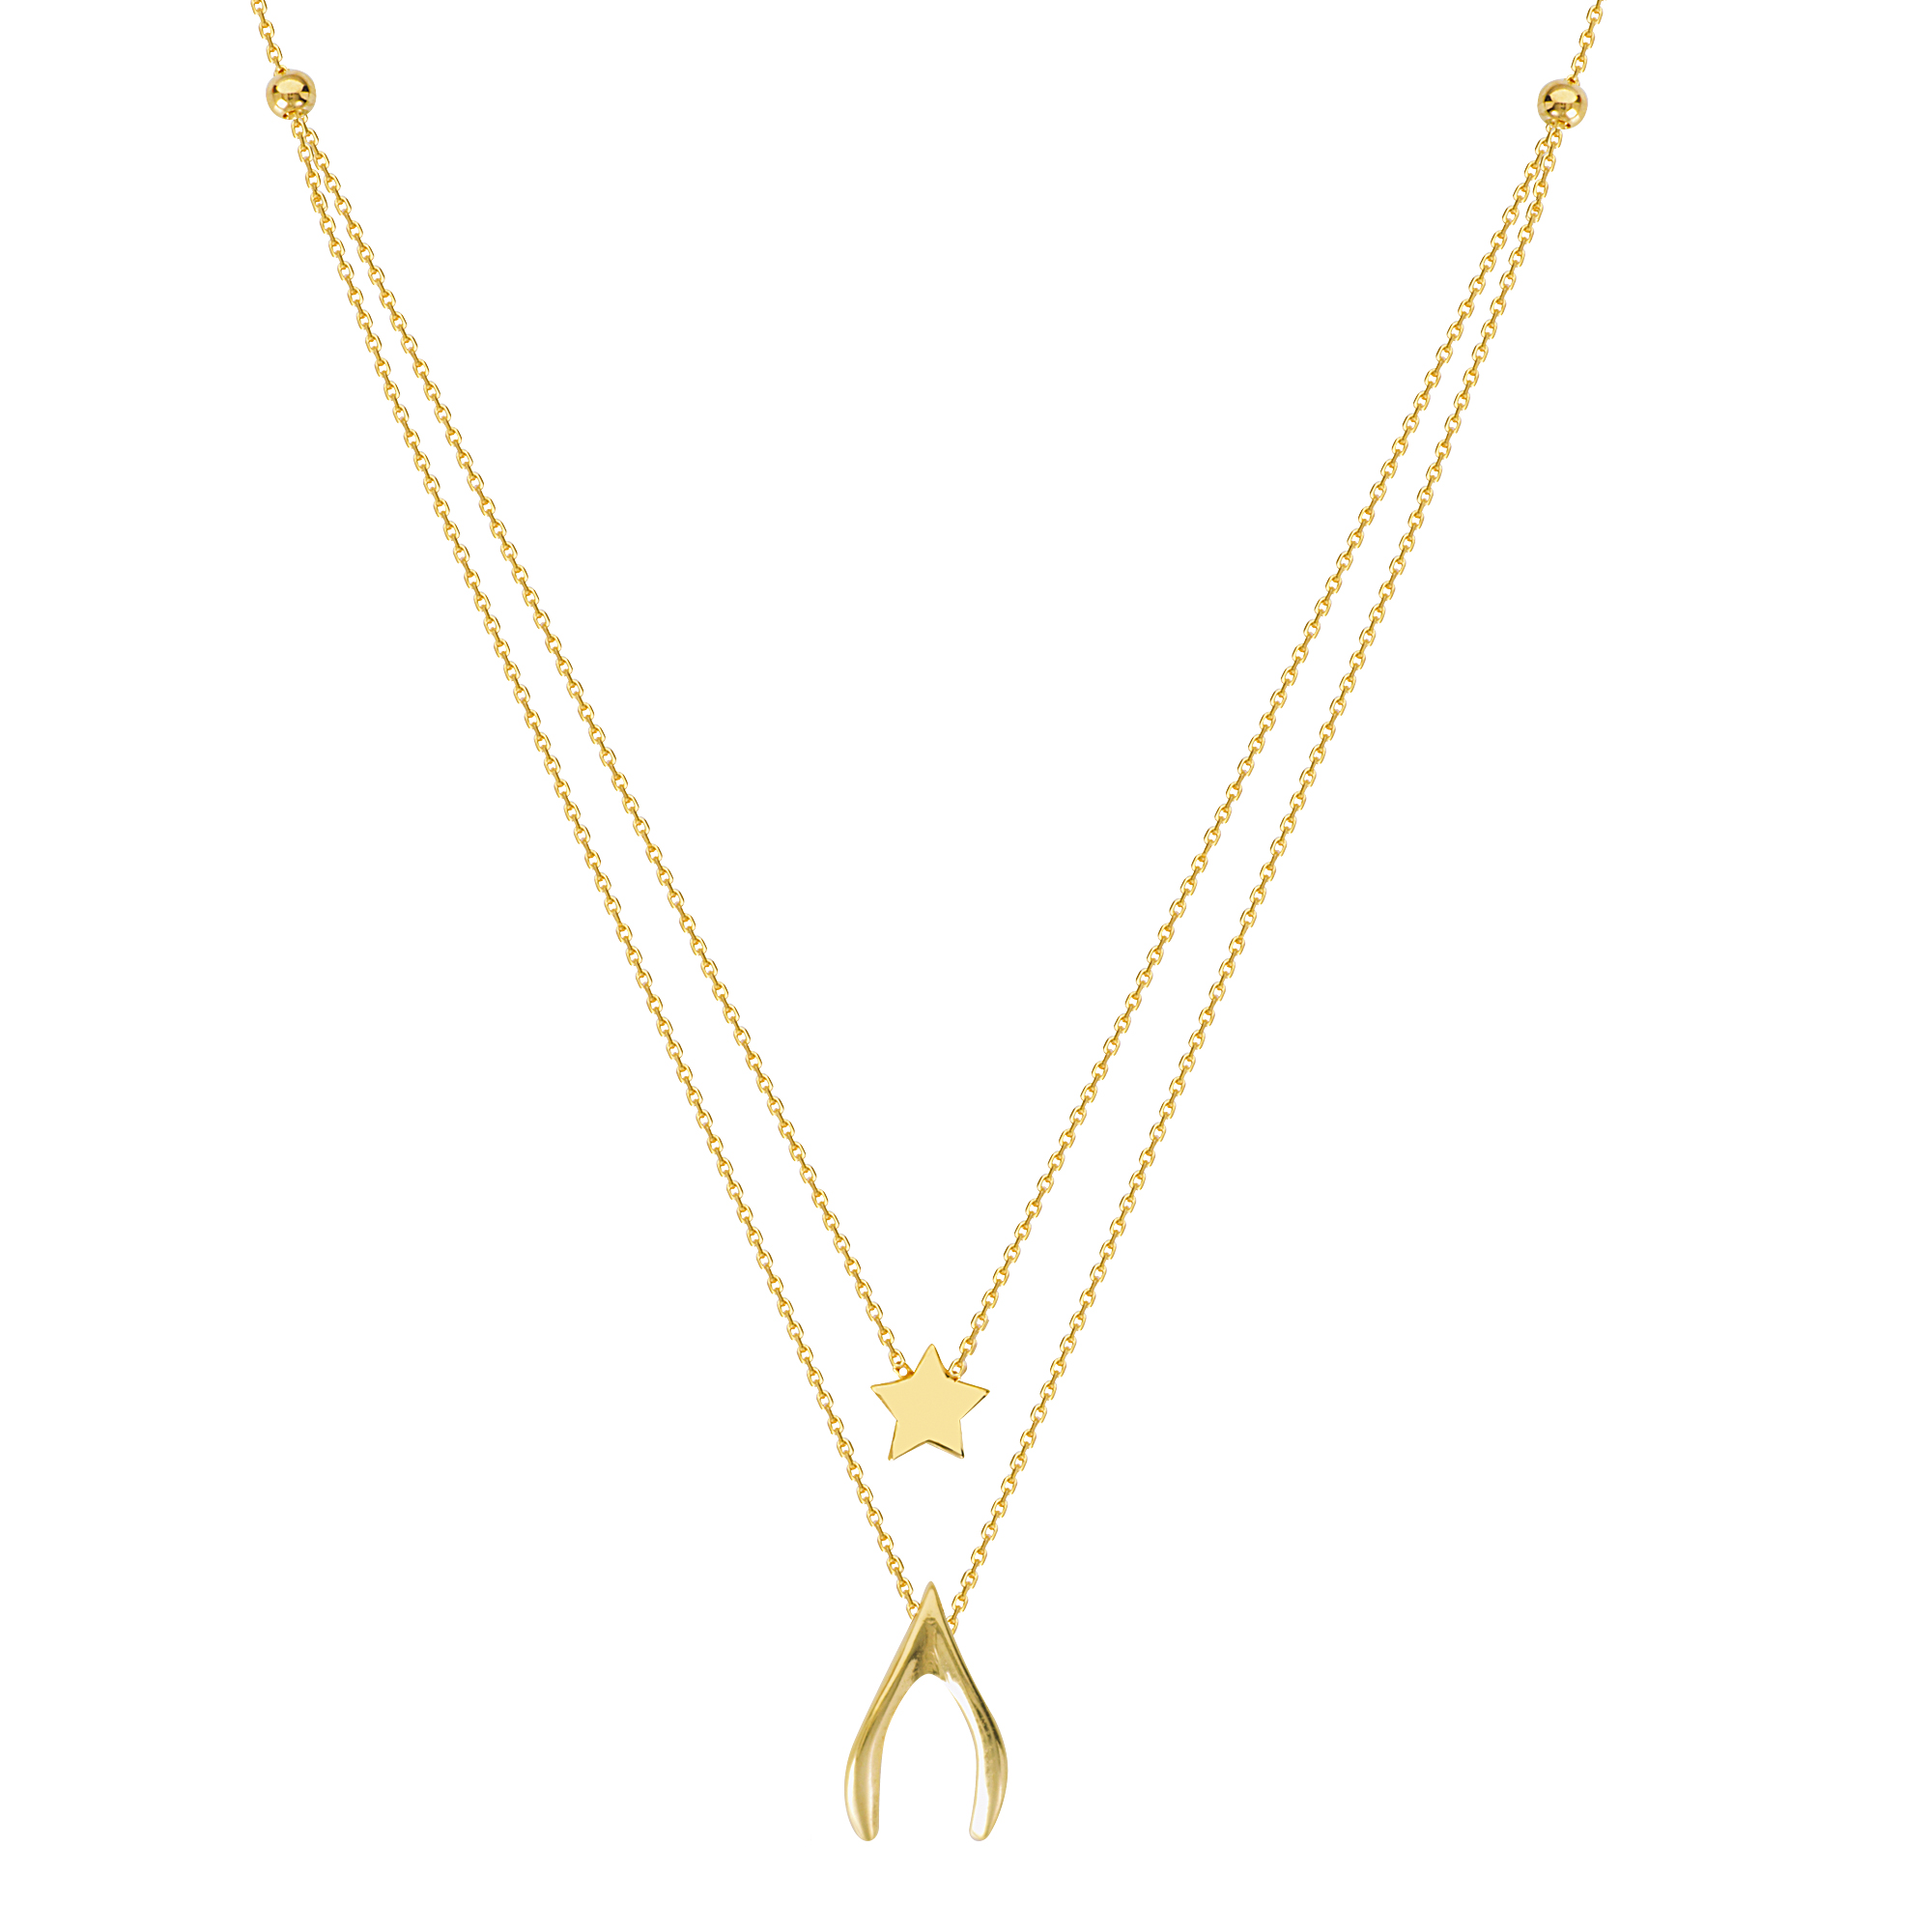 Wish Upon A Star Necklace, 14Kt Gold Wish Upon A Star 18